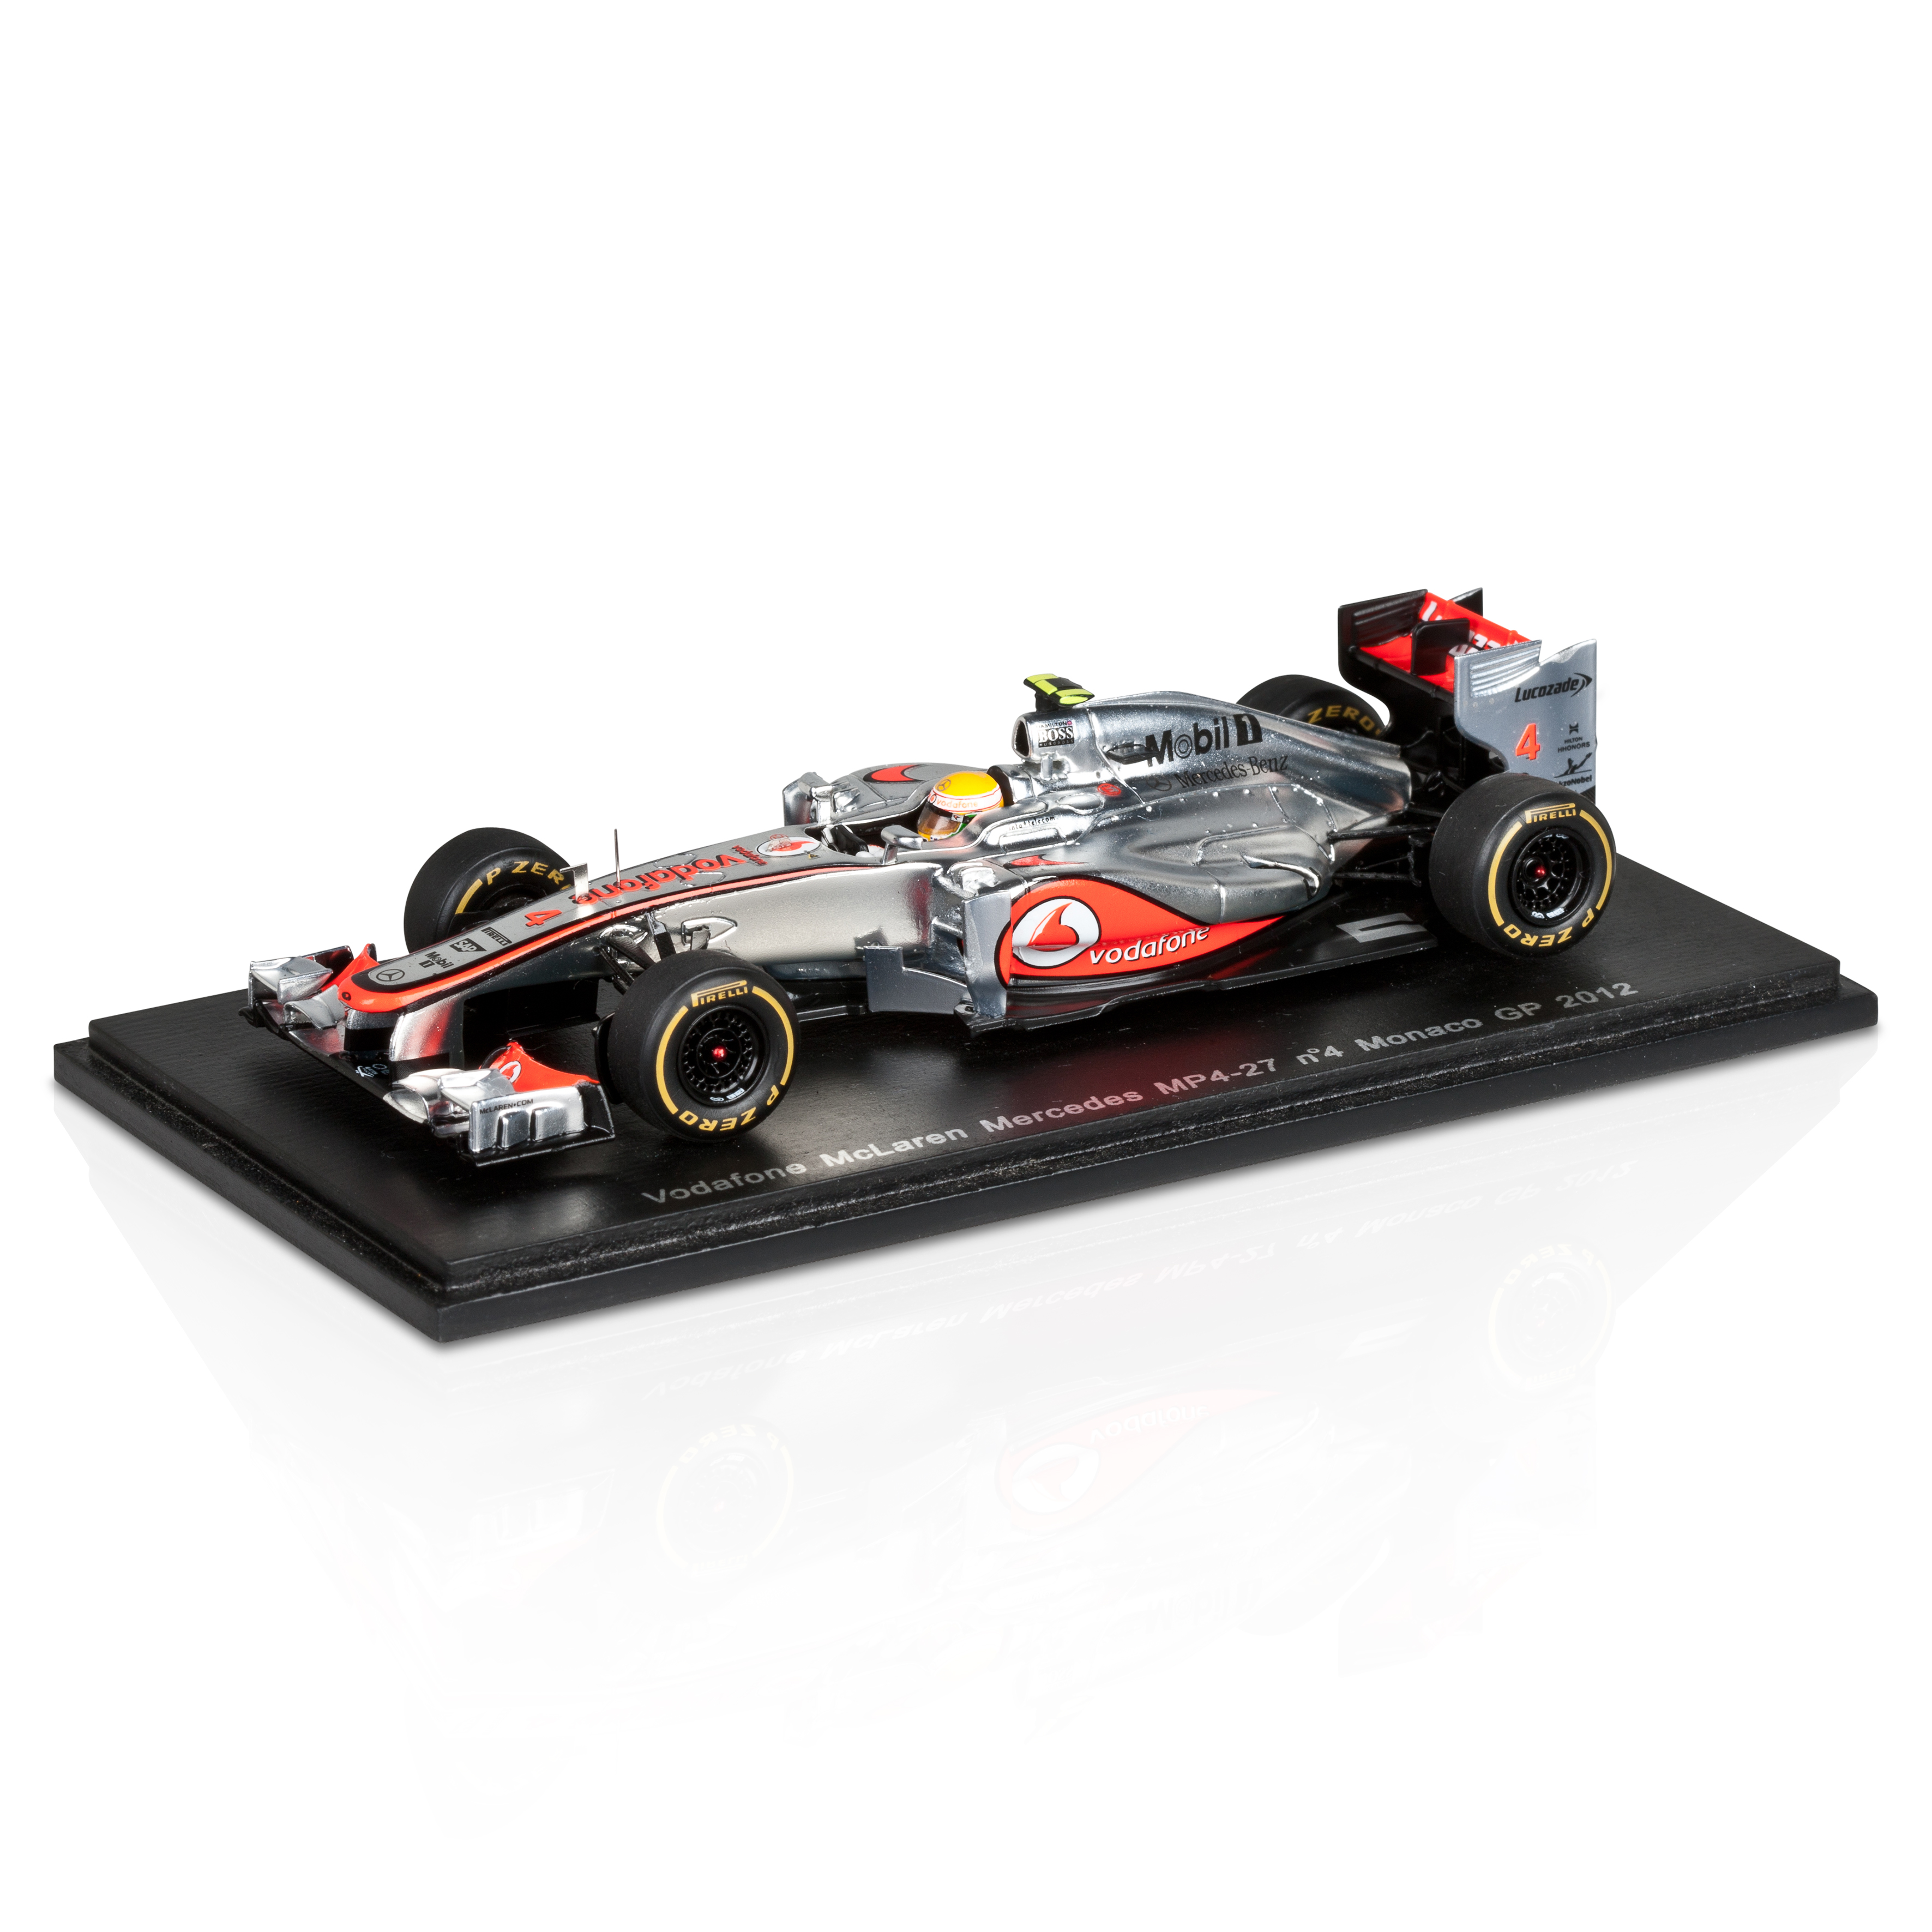 Vodafone Mclaren MP4-27 Lewis Hamilton Monaco GP 2012 1:43 Scale